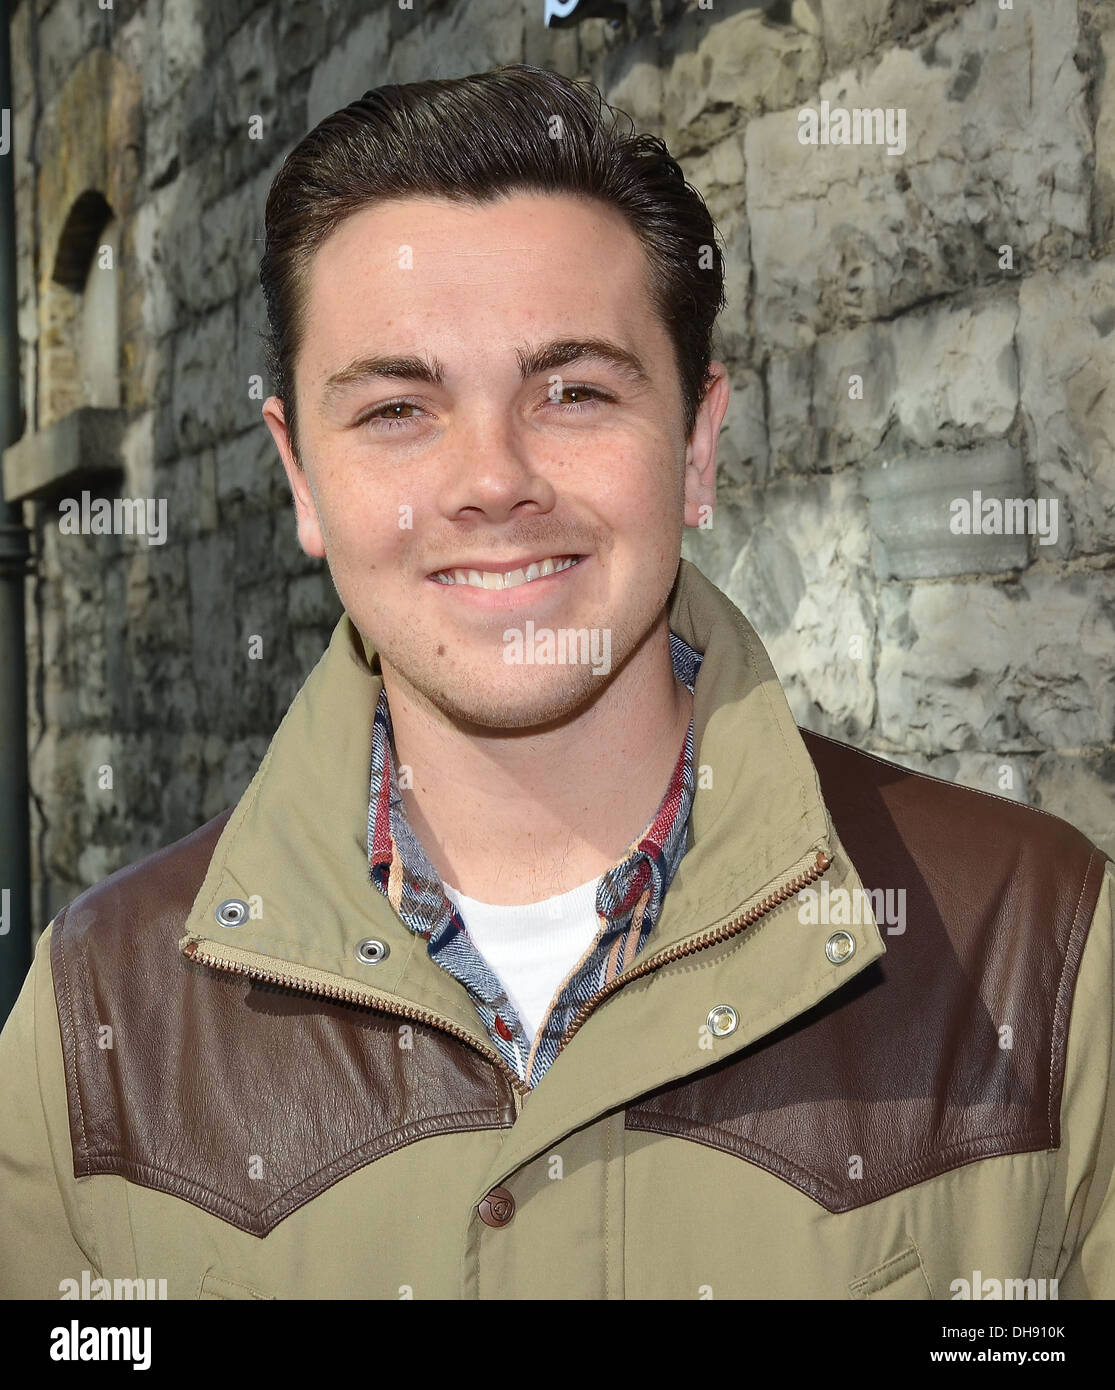 Ray Quinn The stars of Legally Blonde The Muscial at Spin FM Dublin, Ireland - 11.04.12 - Stock Image